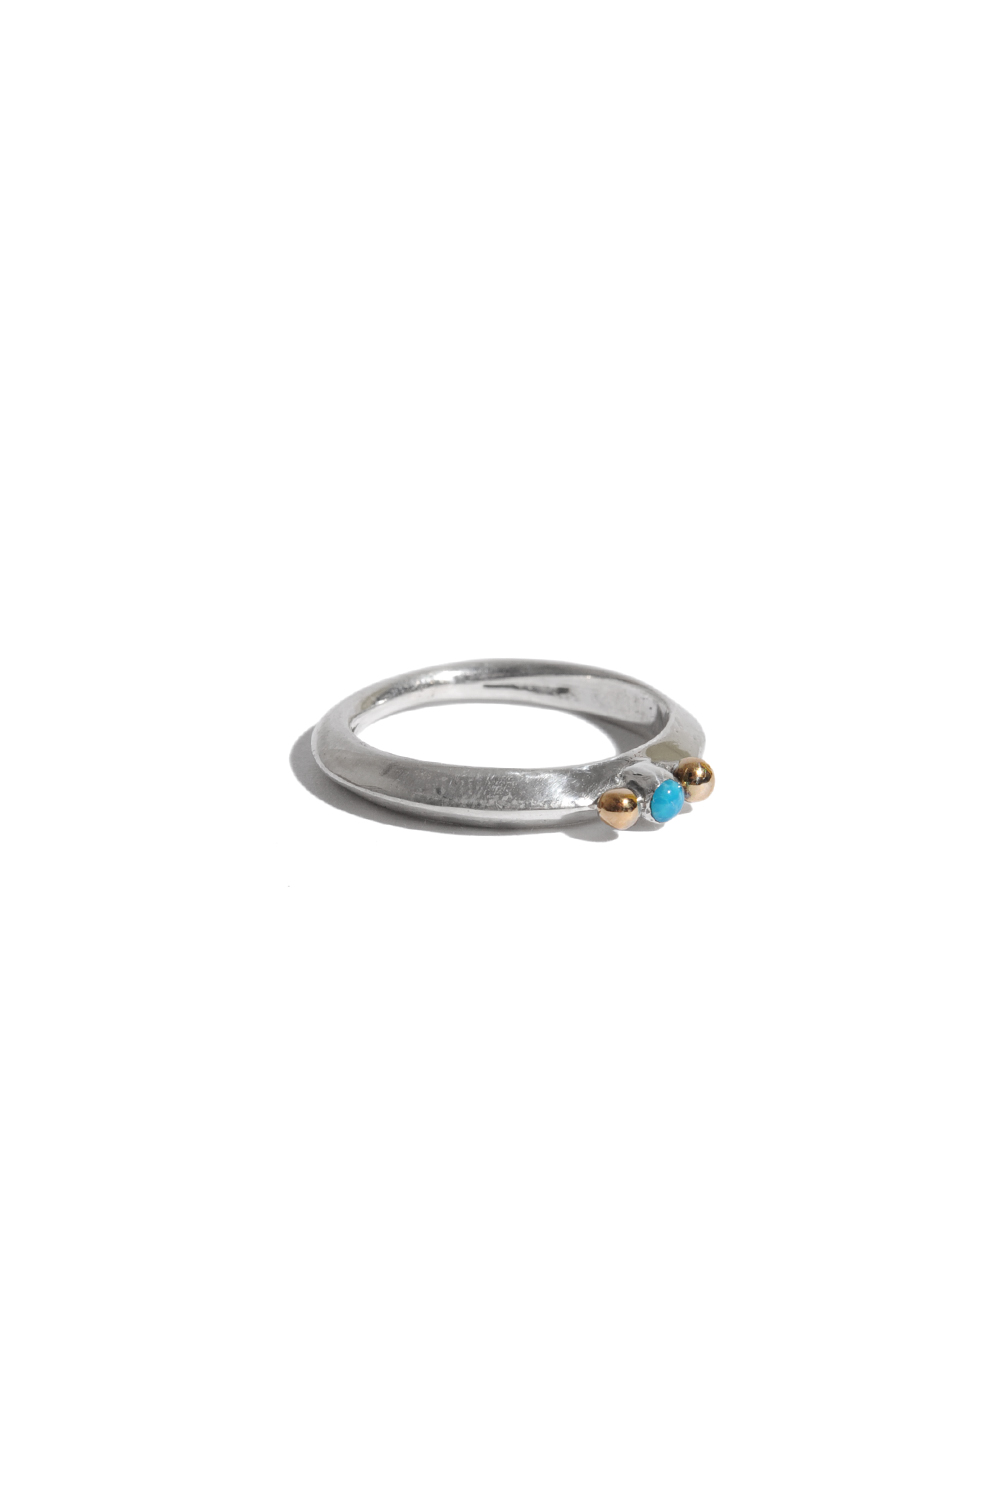 画像1: 【LARRY SMITH】EXTRA THIN TURQUOISE RING 18K POINTED (1)